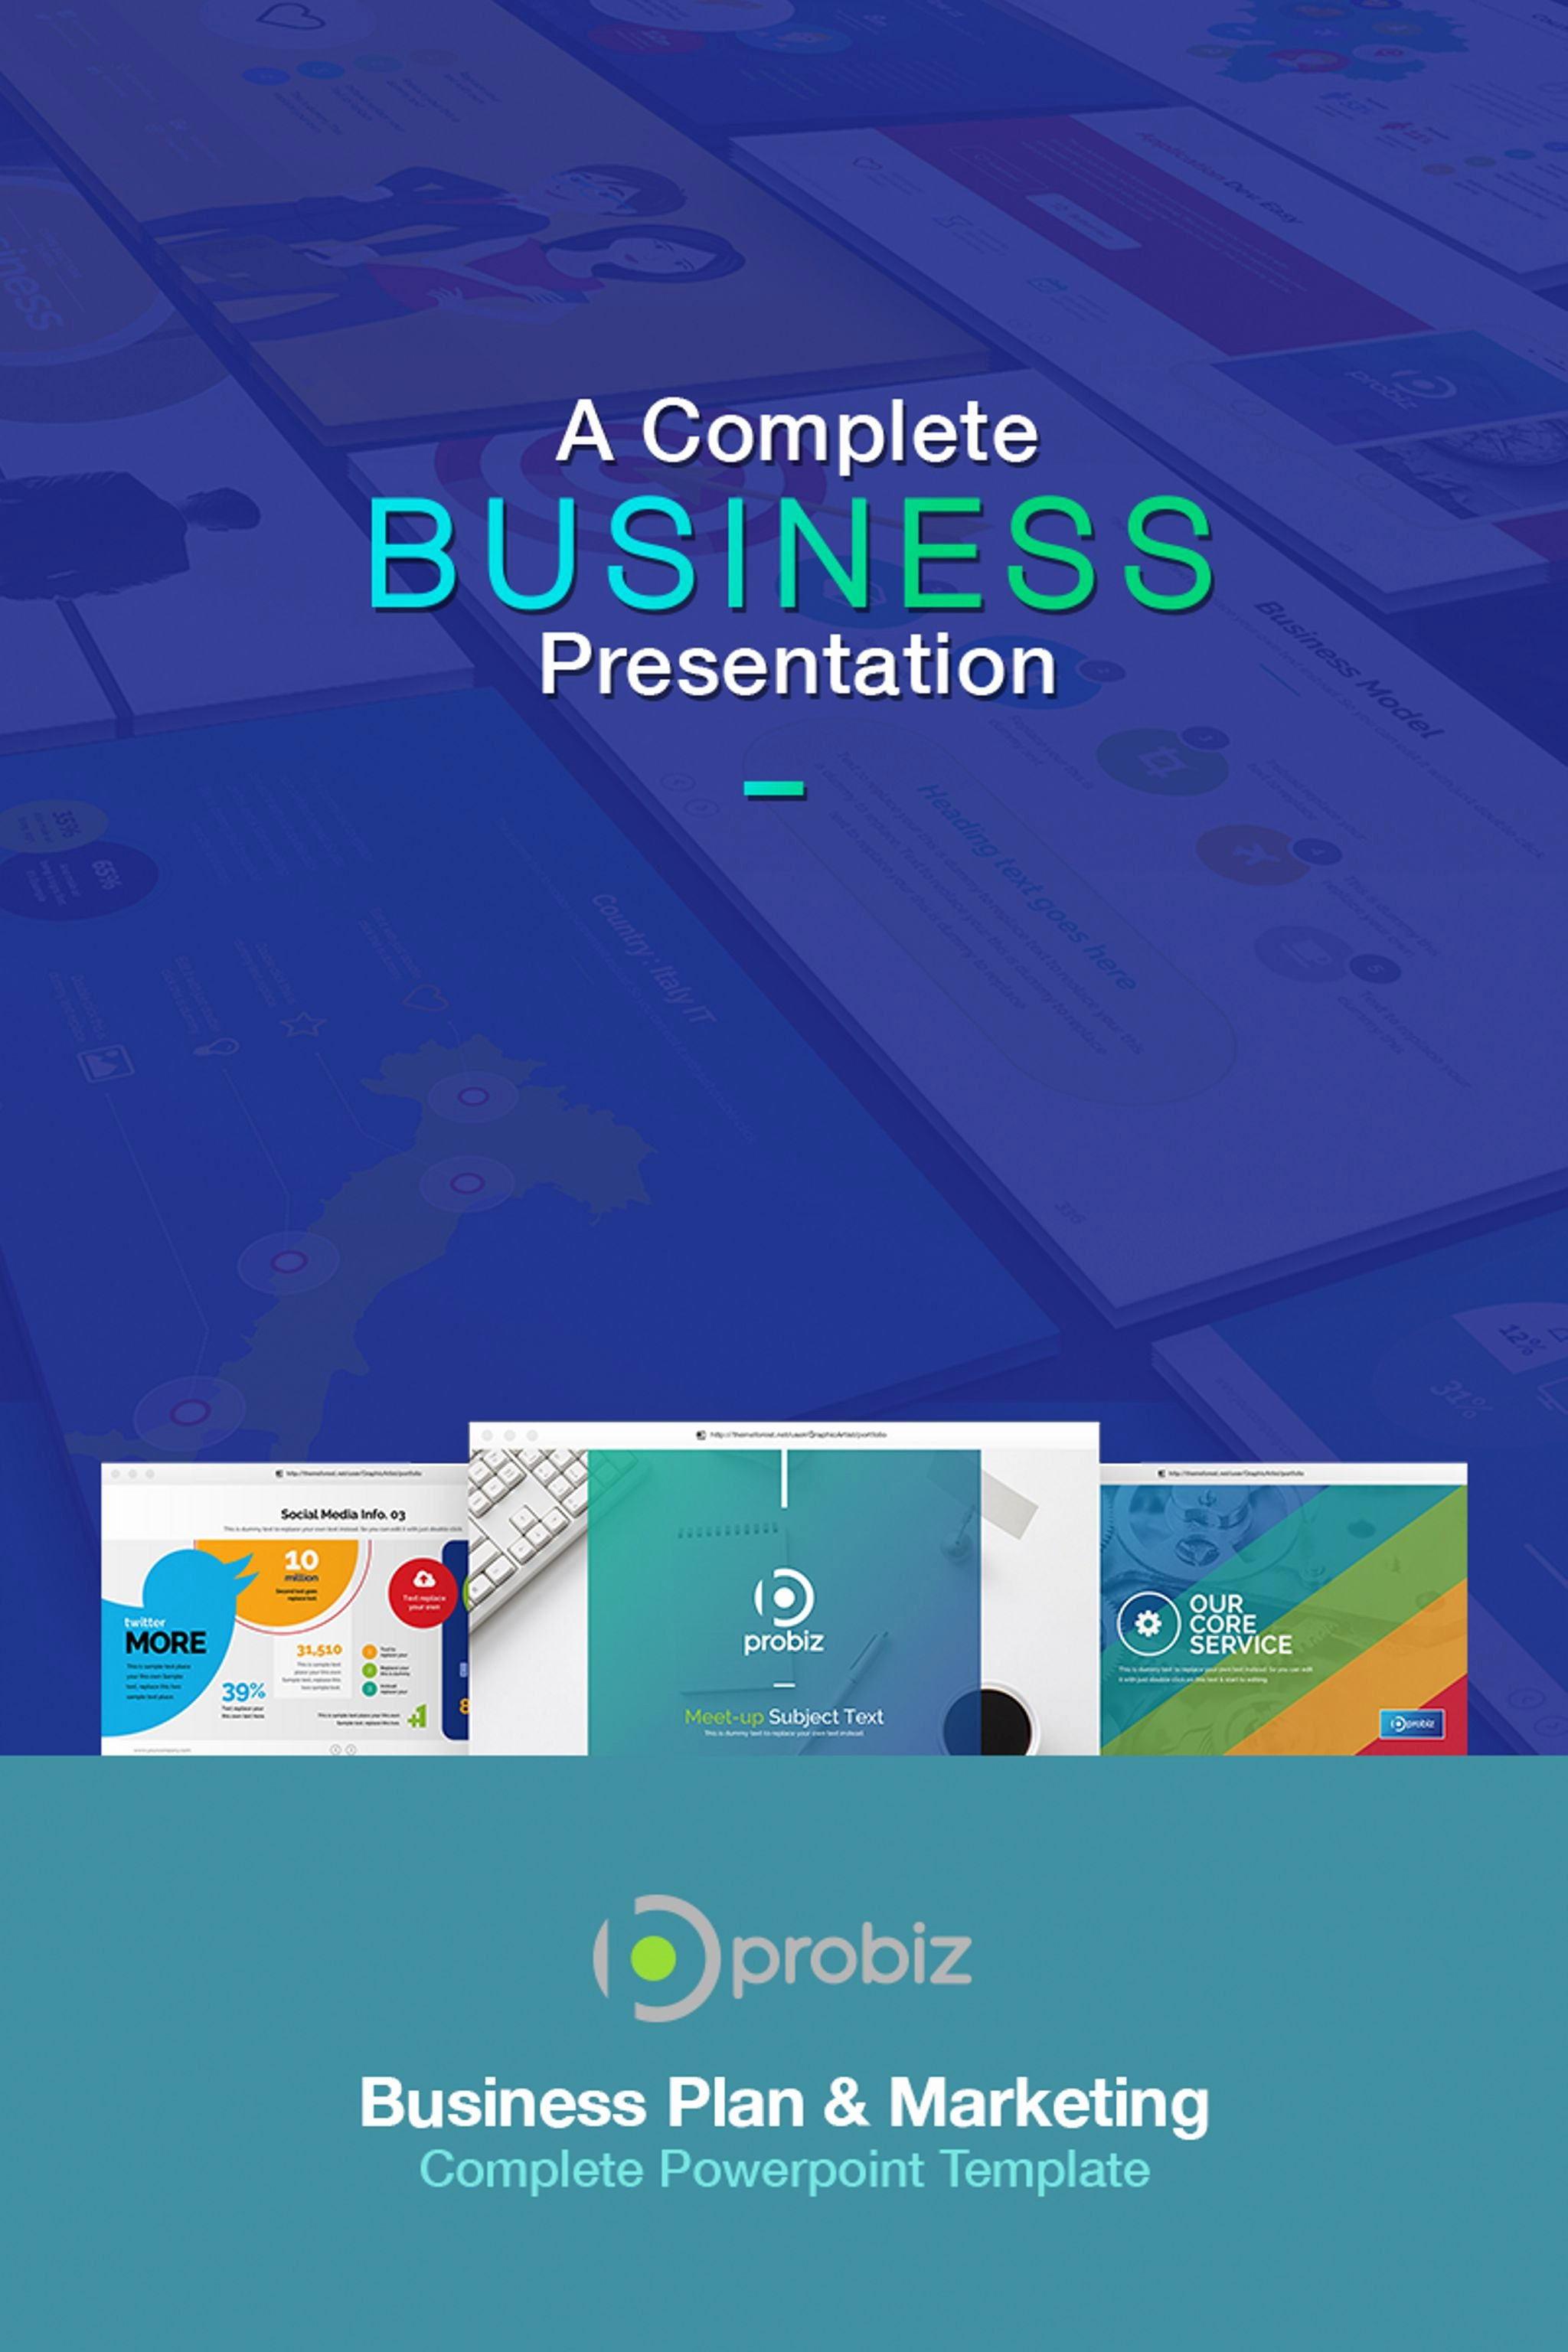 Business Plan Presentation Template Lovely Business Plan & Marketing Powerpoint Template